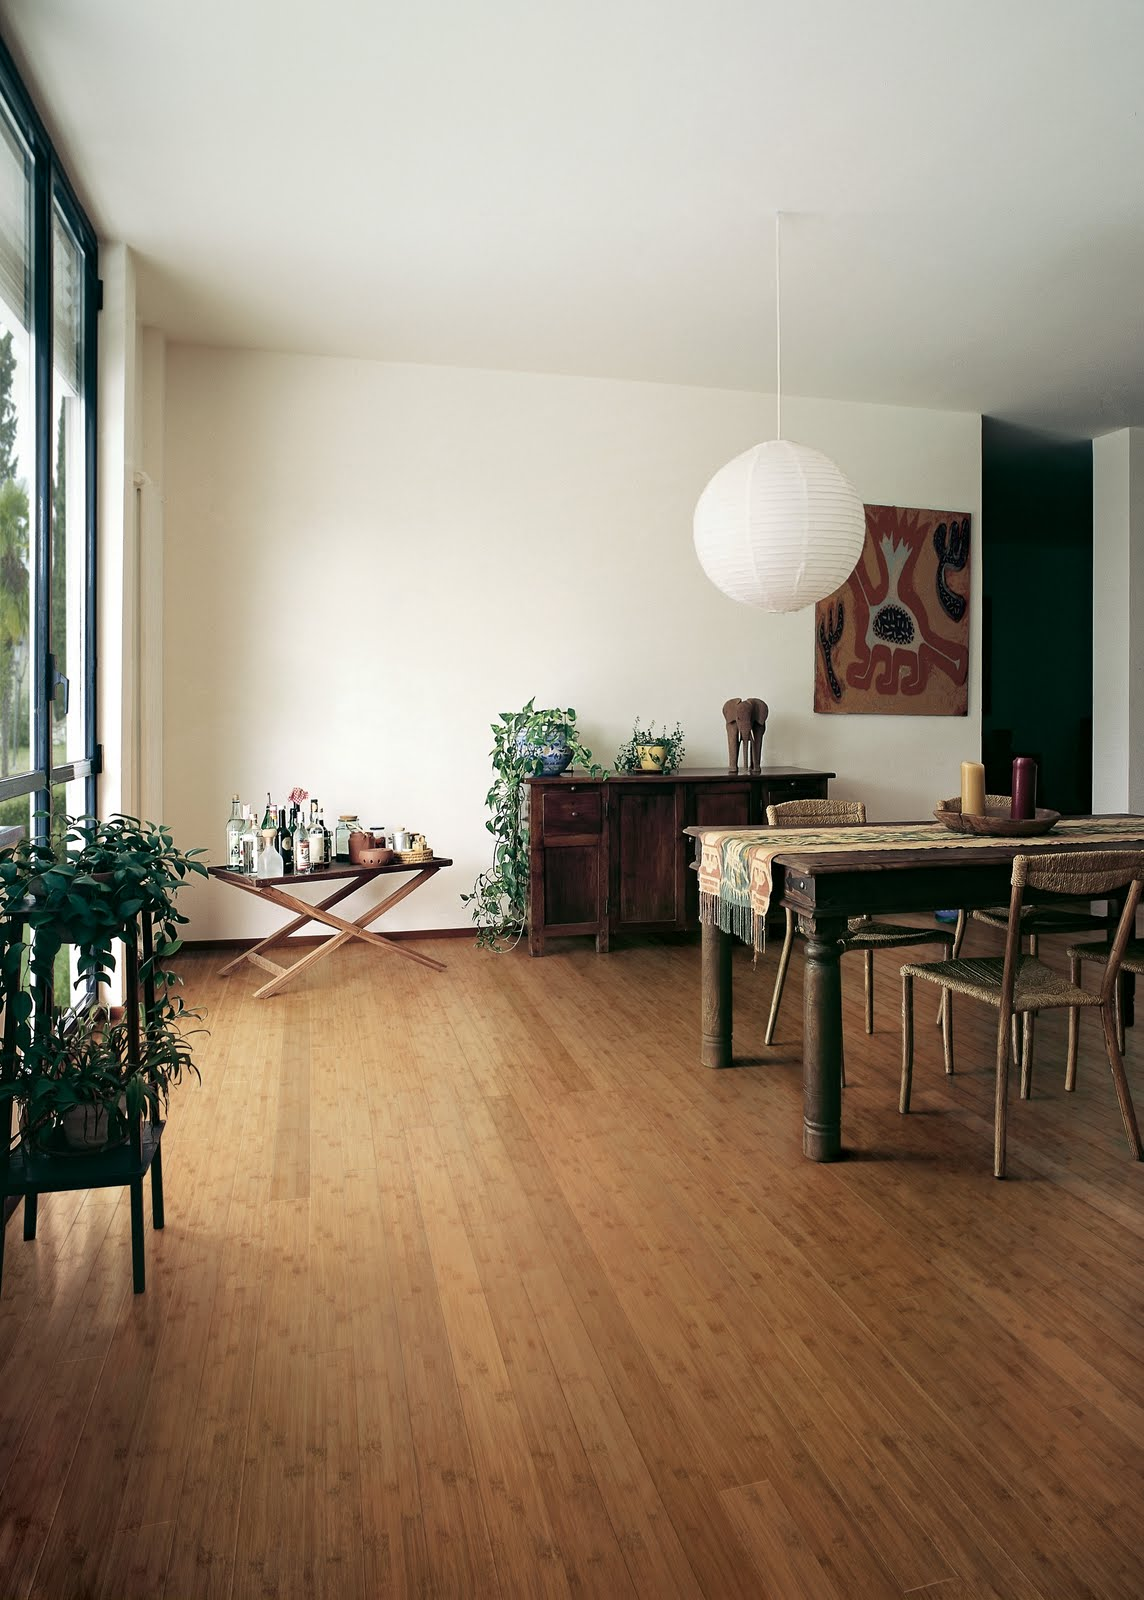 The pros and cons of hardwood flooring anna ione interiors - Pros and cons of hardwood flooring ...